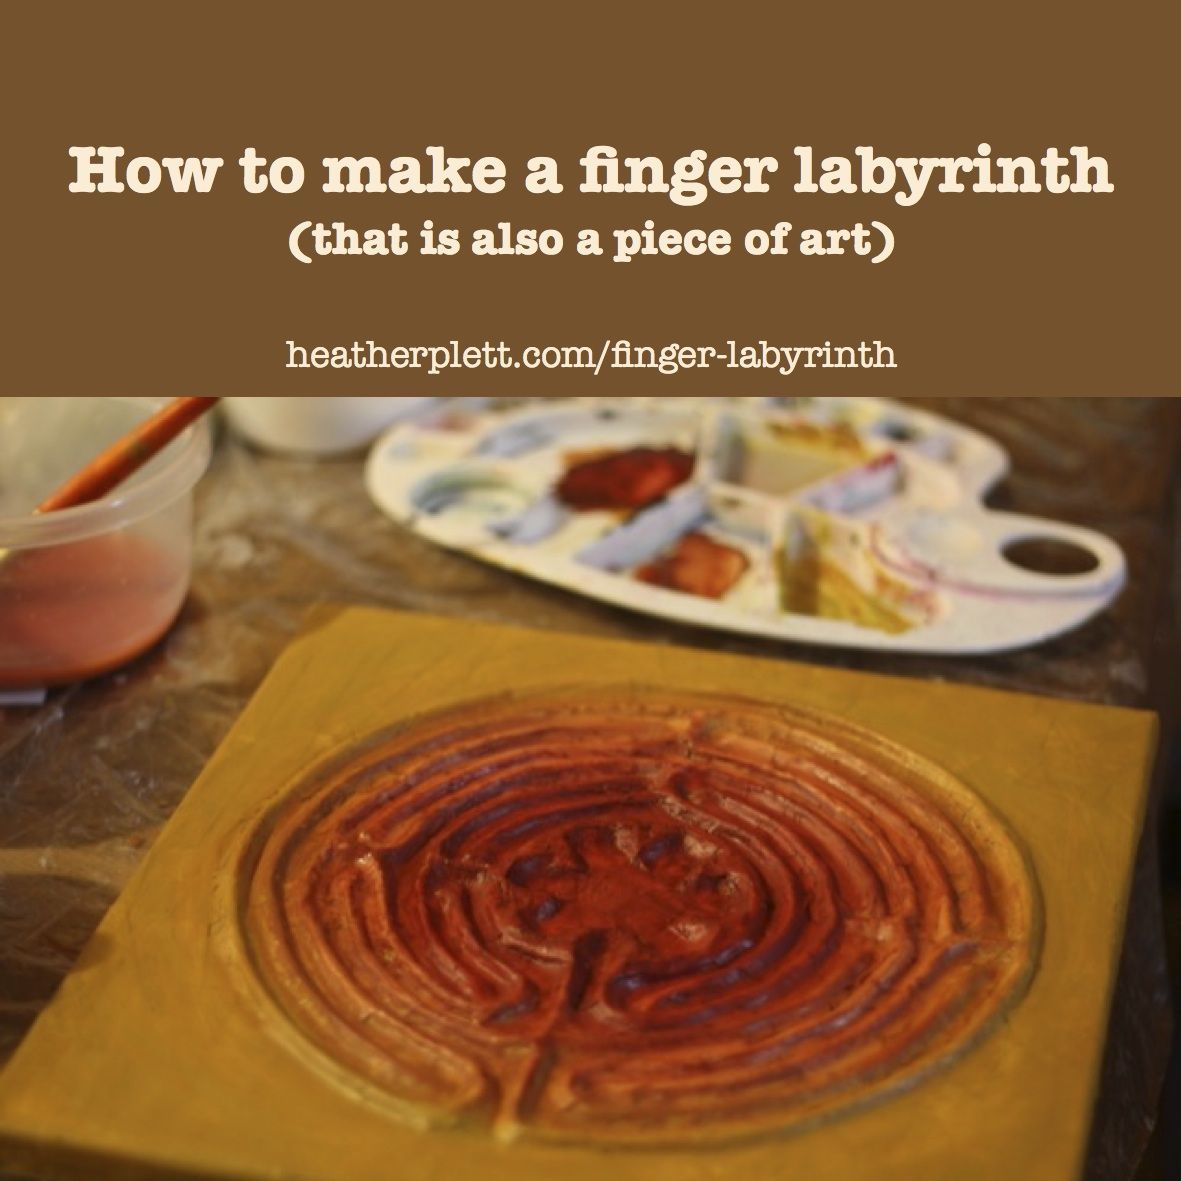 Make A Simple Finger Labyrinth With Easy To Access Materials And Use Circuit Classical From 5circuit Chartres It As Meditation Tool Or Hang Piece Of Art